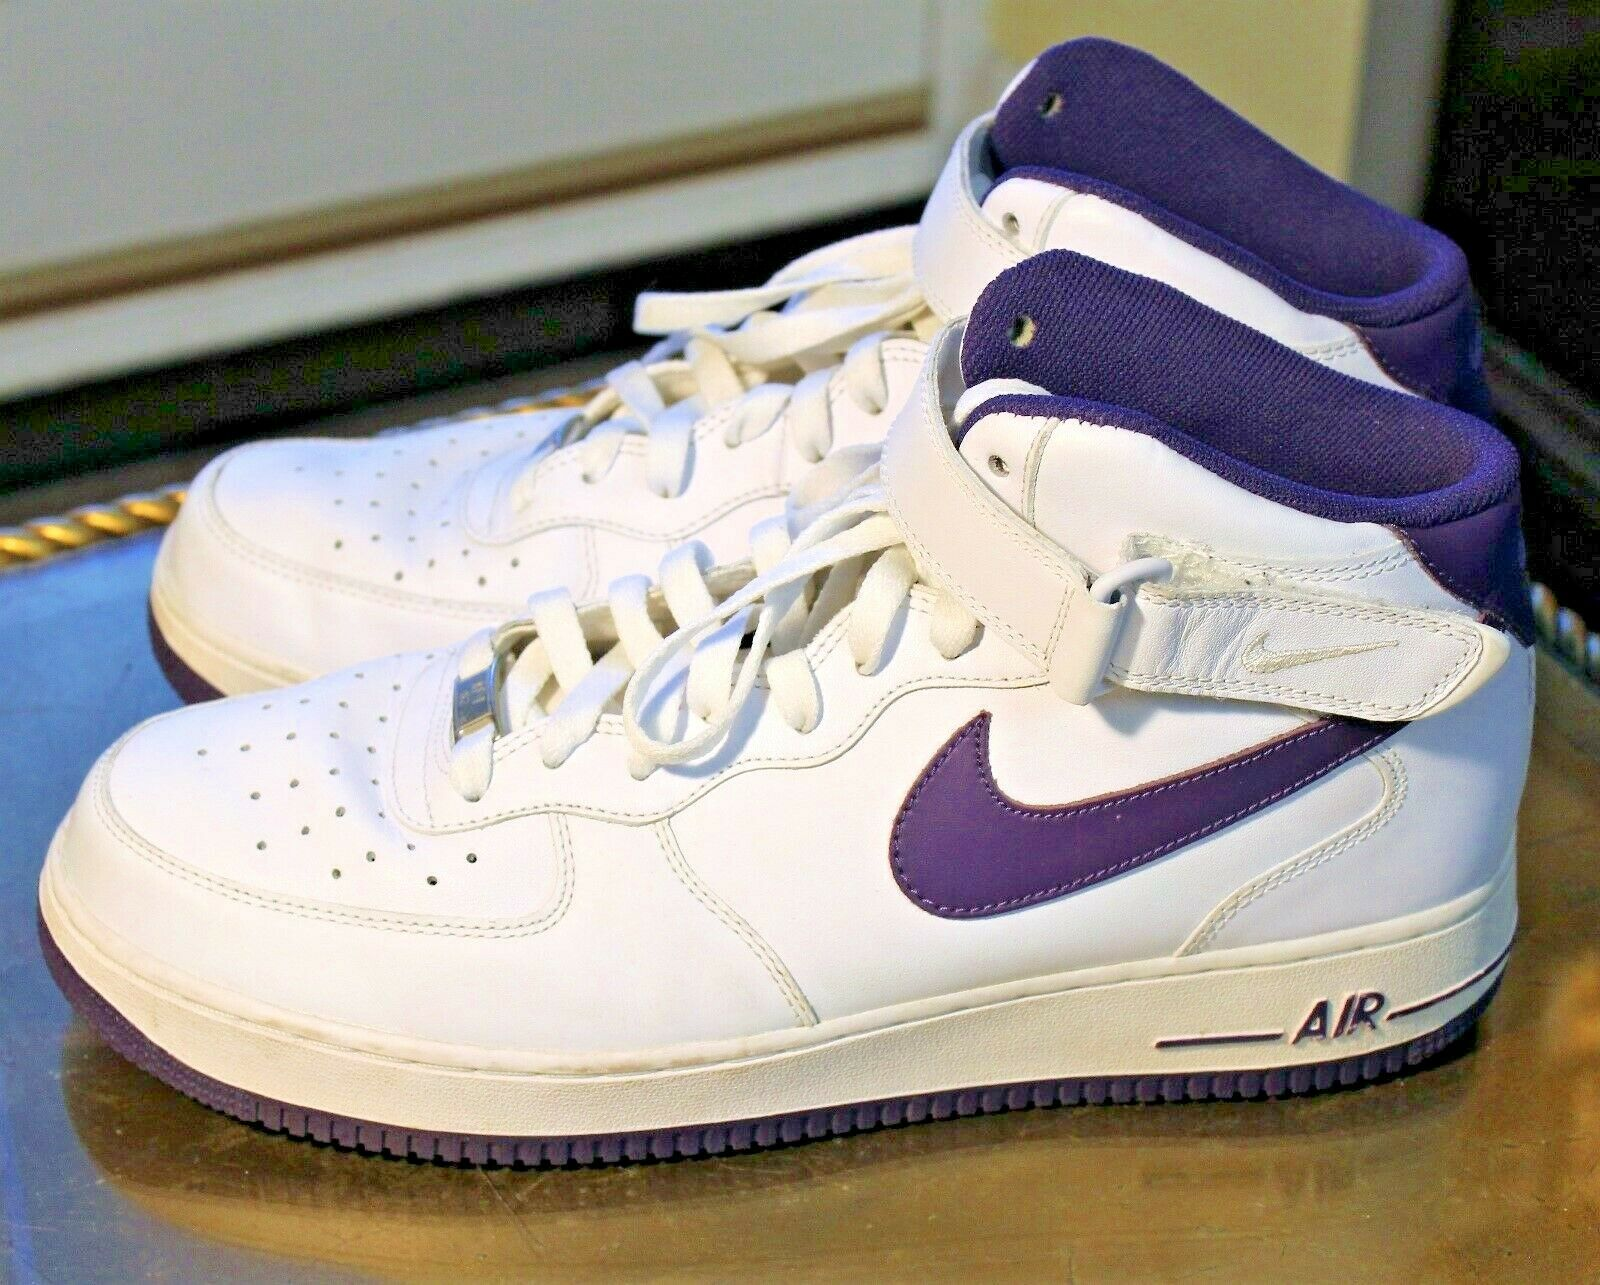 ece65baf0fe4 NIKE AIR FORCE 1 AF1 PREMIUM MID SNEAKER HIGH WHITE PURPLE SIZE 11.5 ...